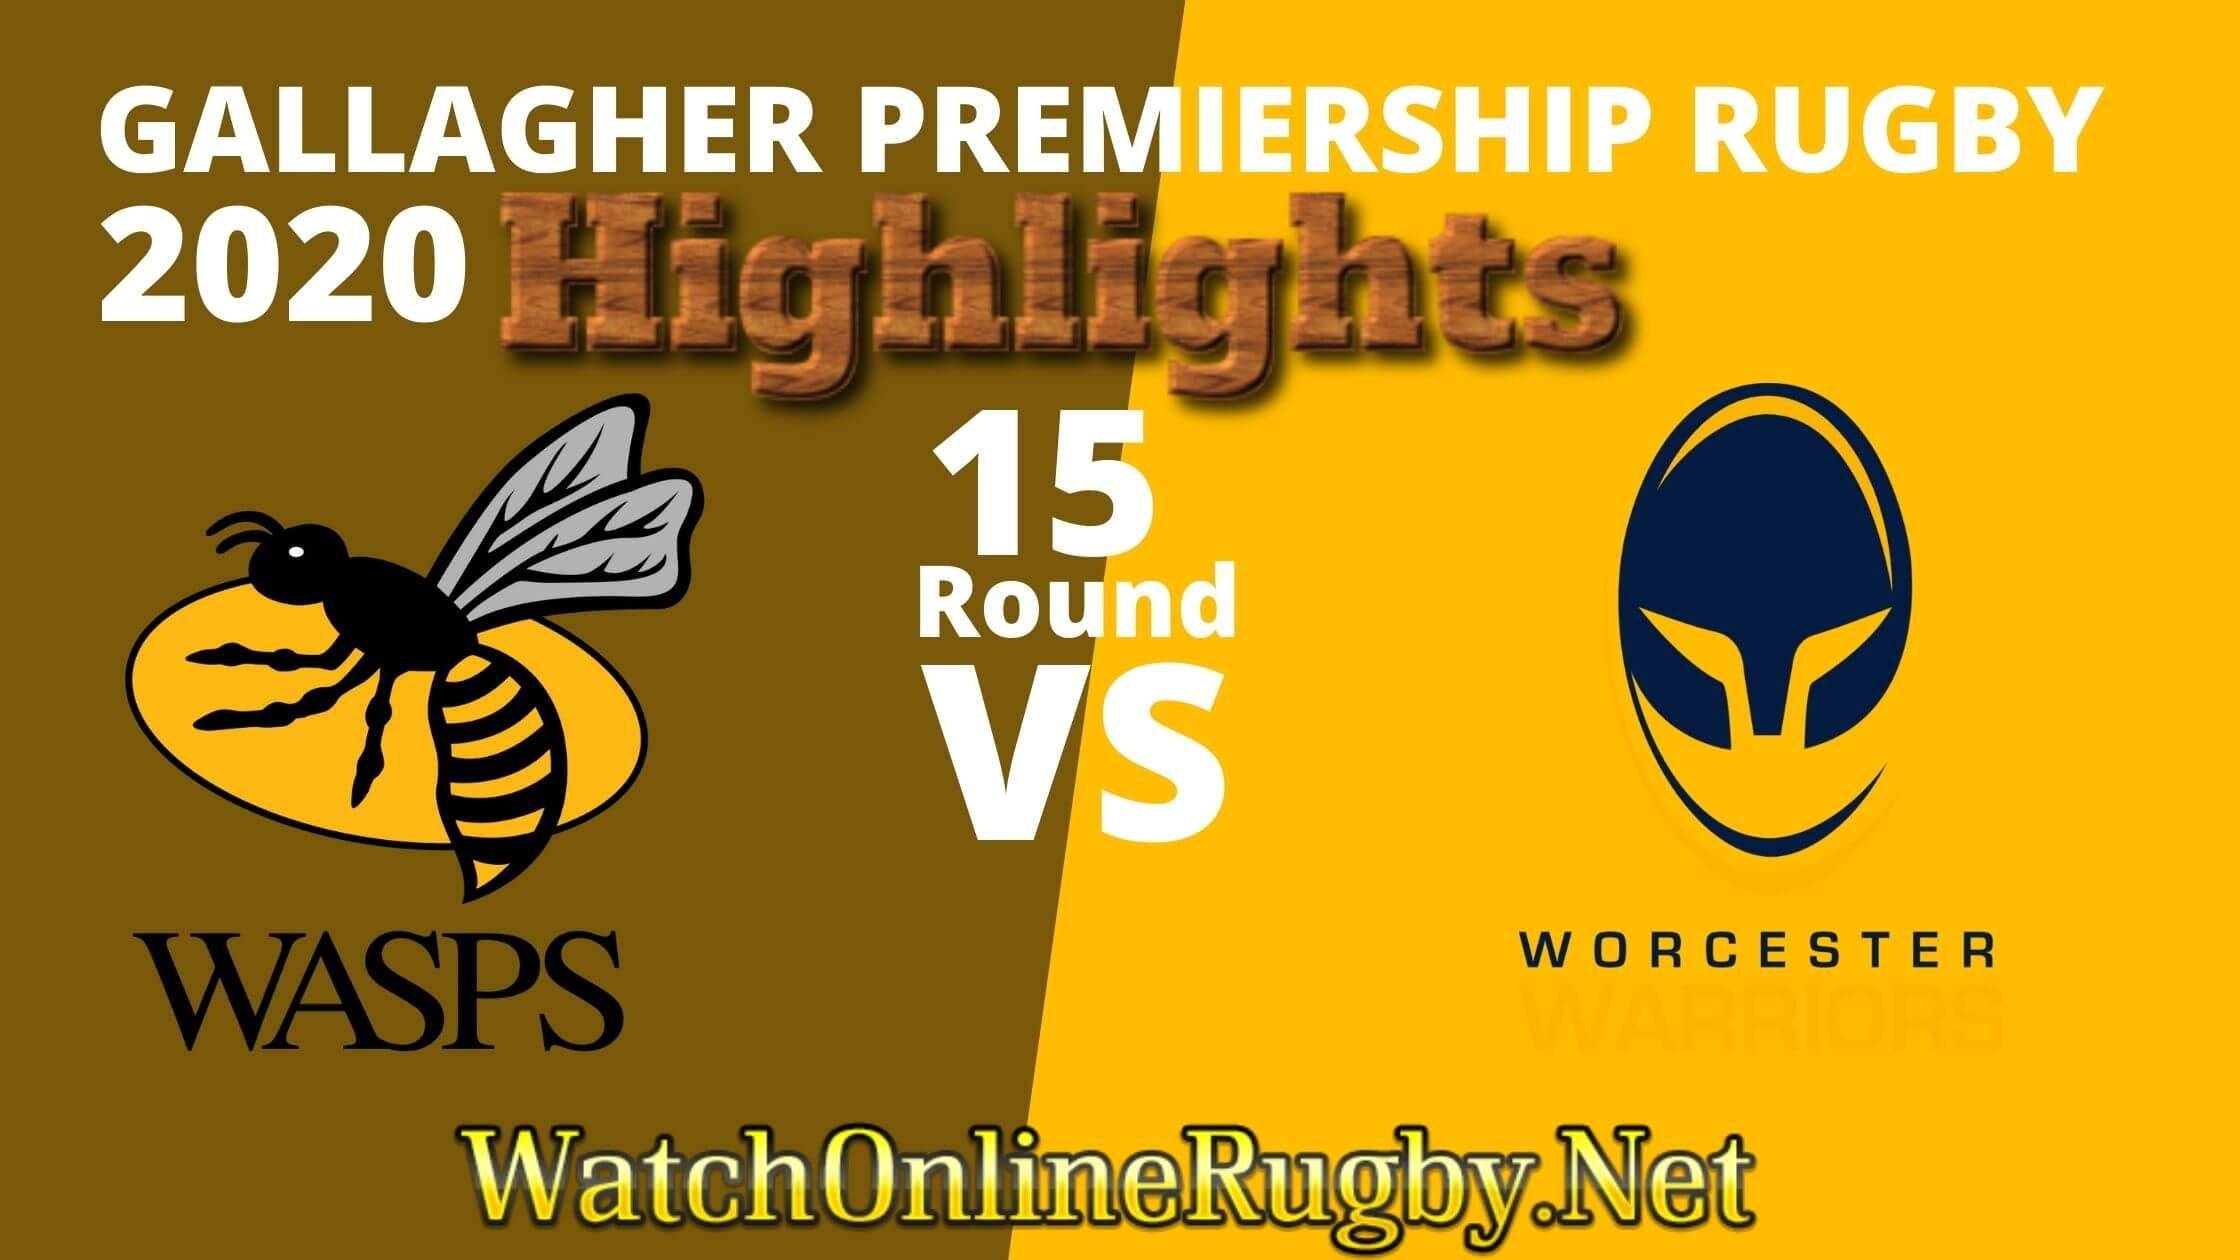 Wasps Vs Worcester Warriors Highlights 2020 Rd 15